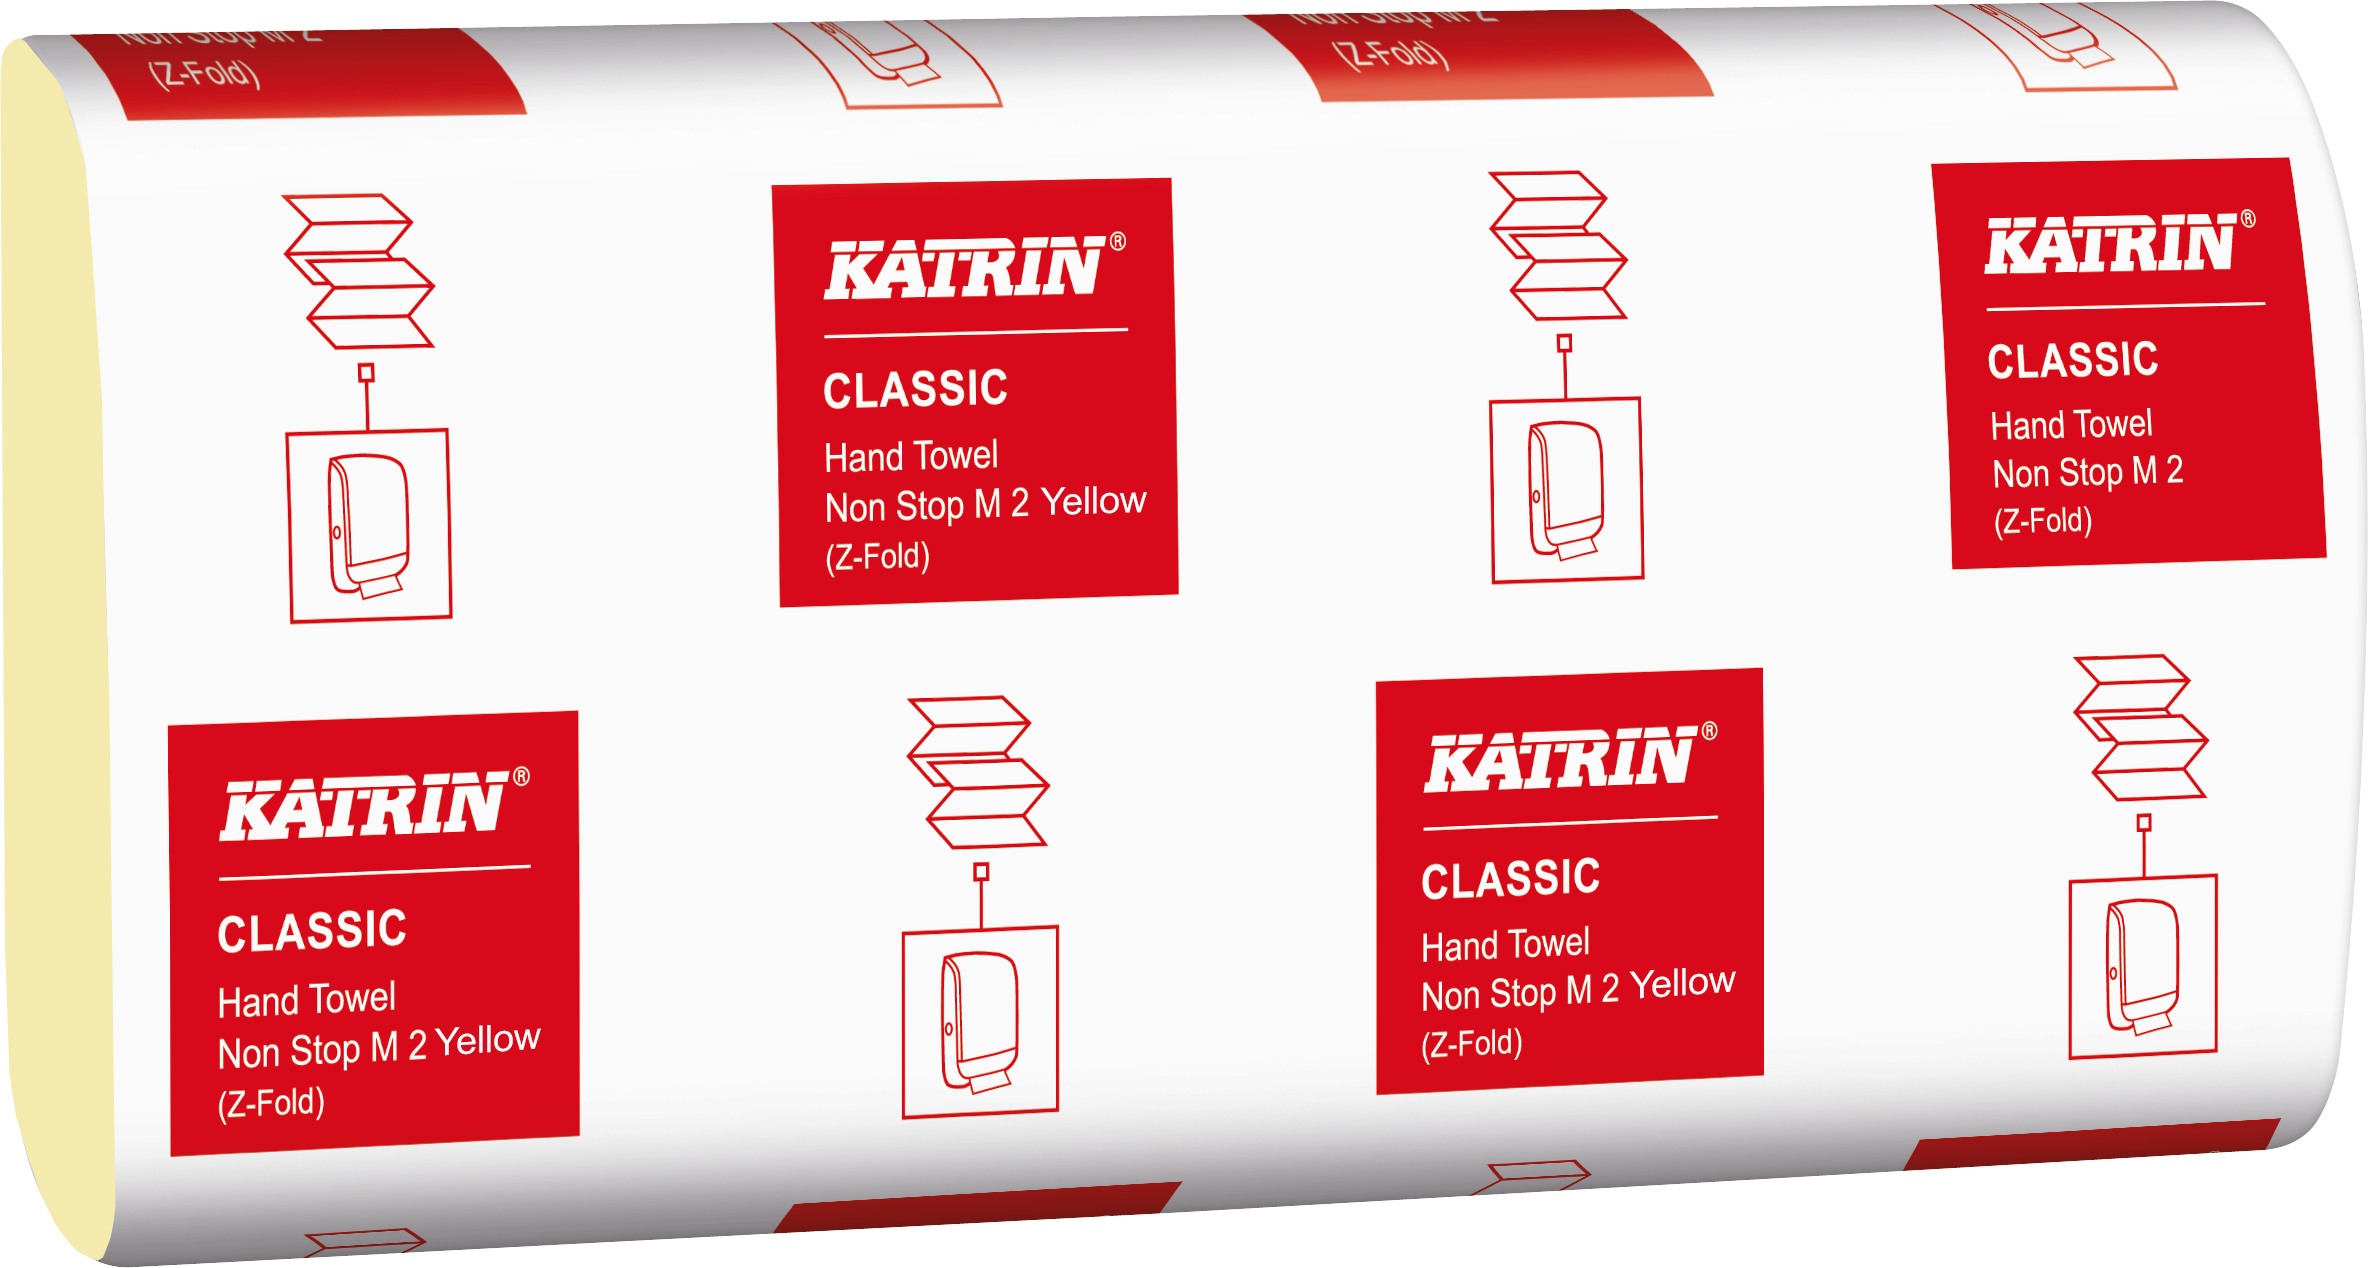 Katrin Classic Hand Towel Non Stop M2 yellow